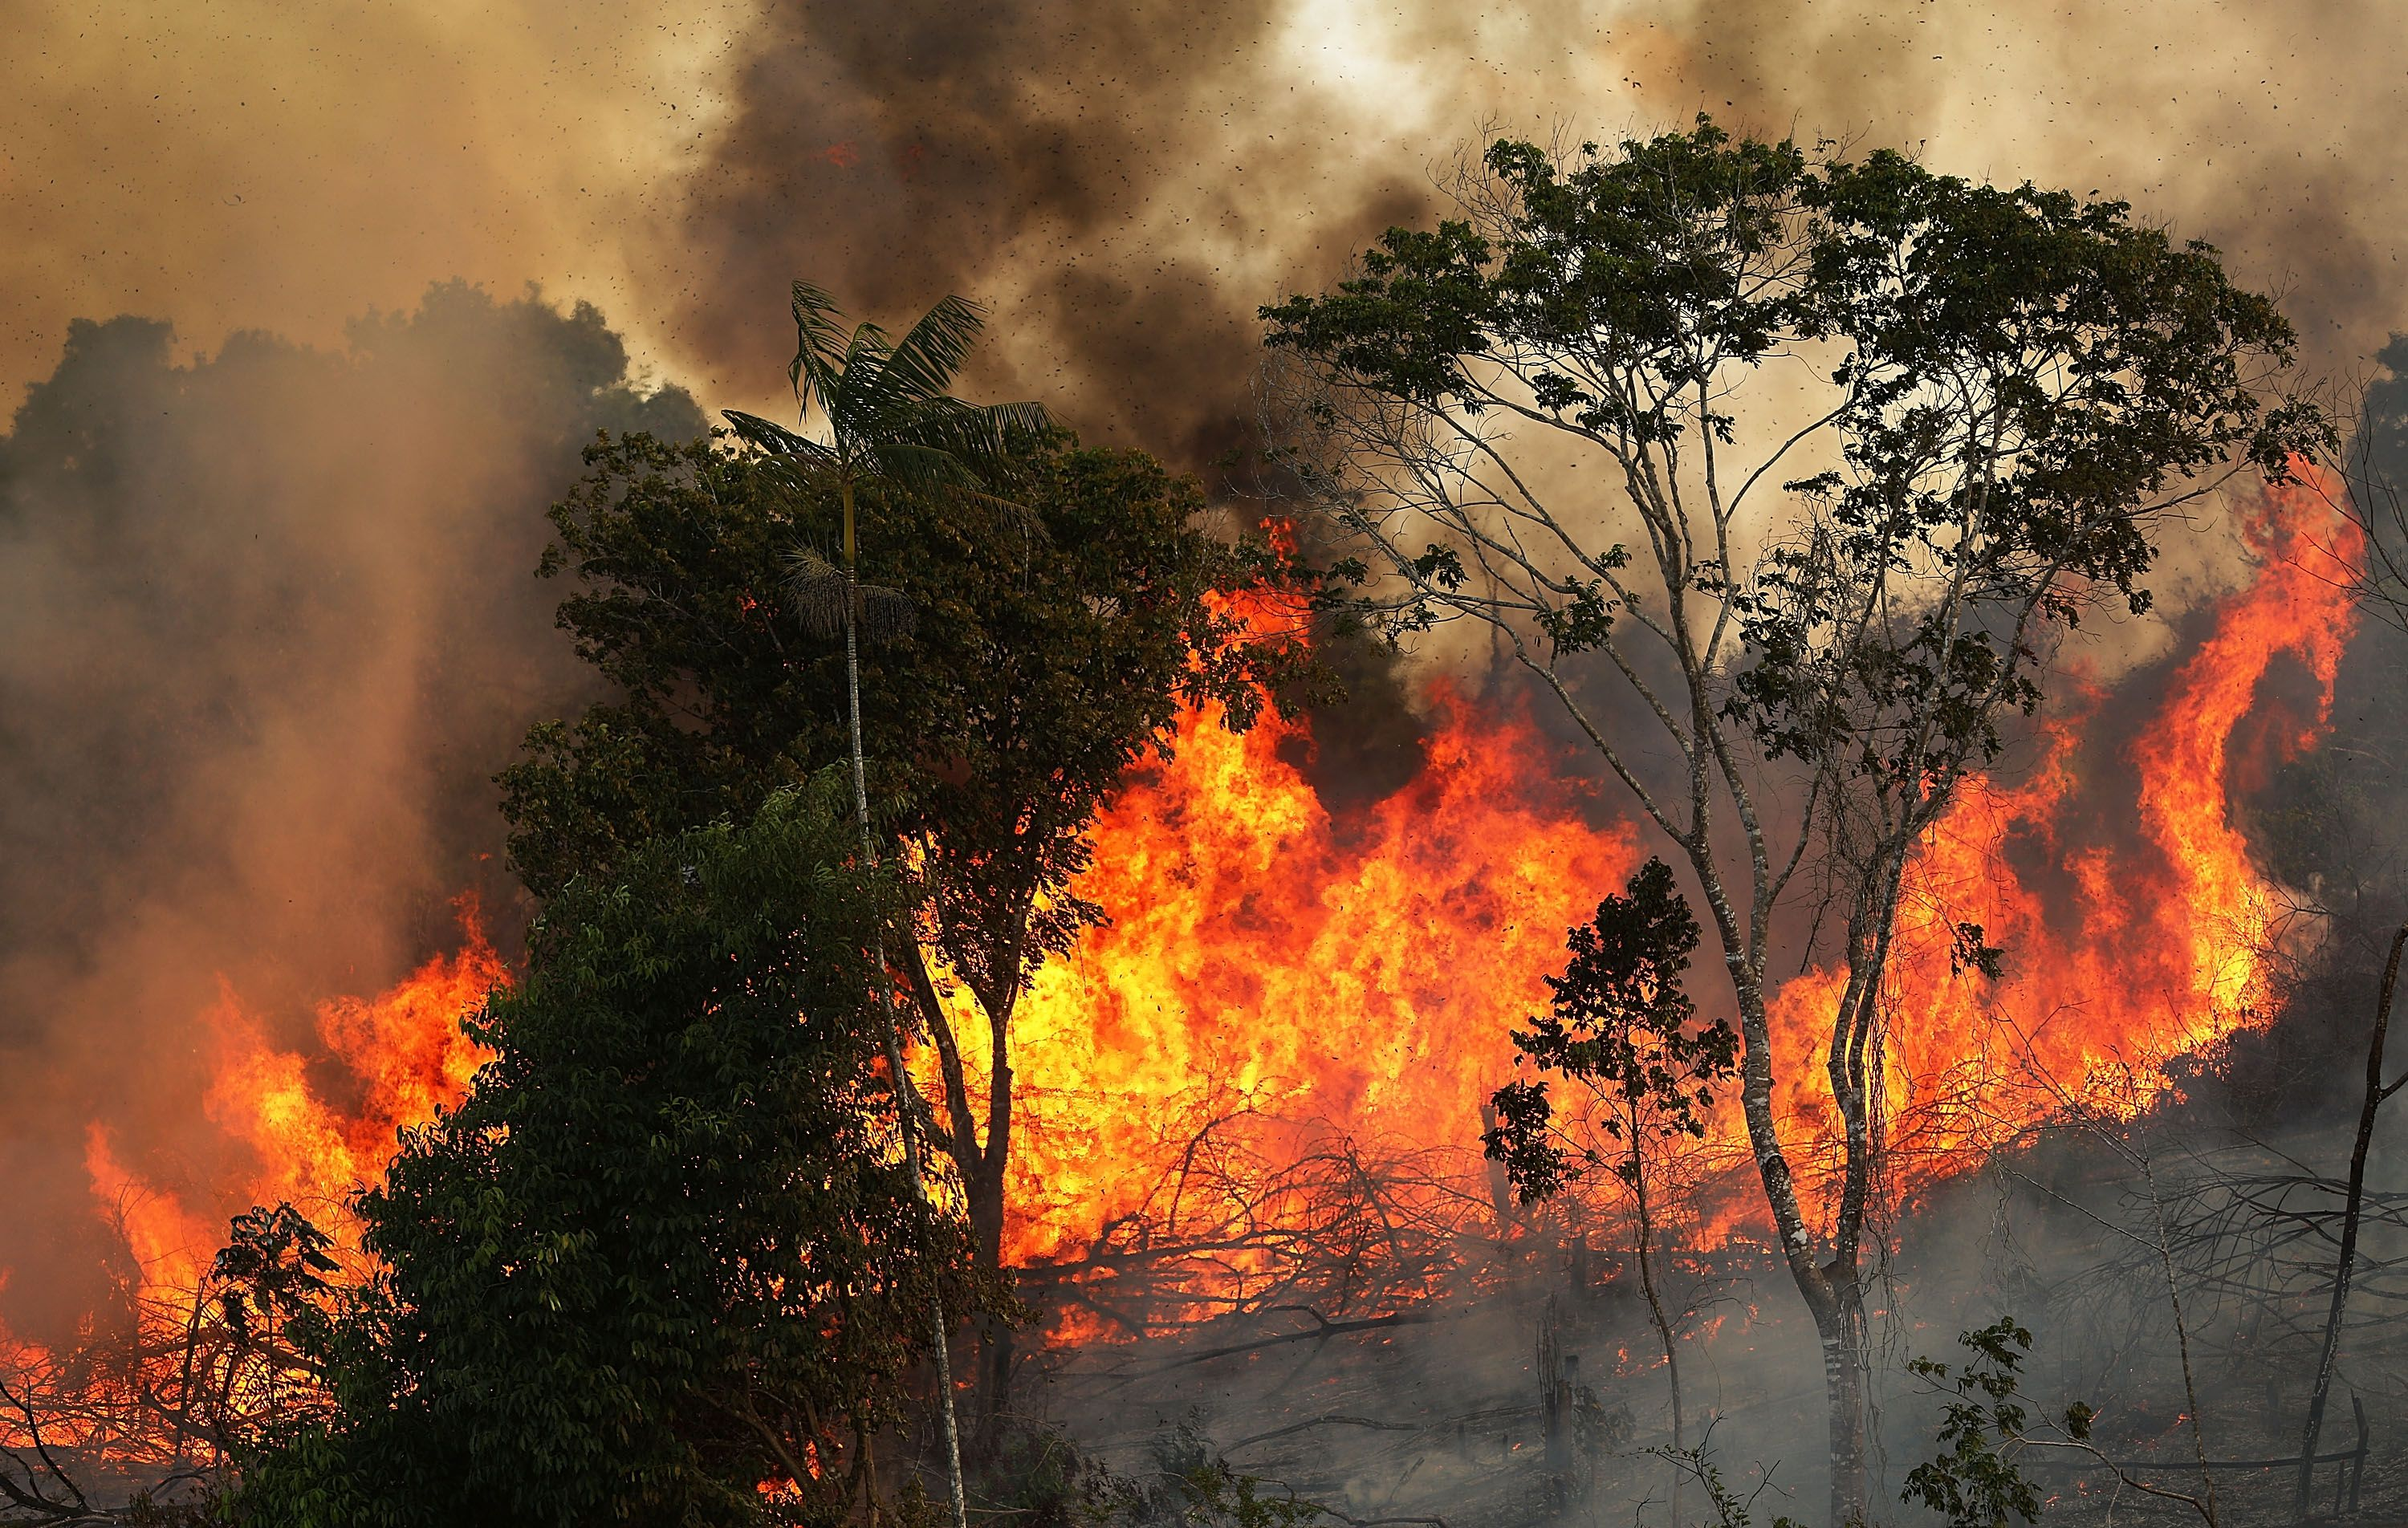 Celebrities Are Speaking Out in Response to Brazil's Amazon Rainforest Fires